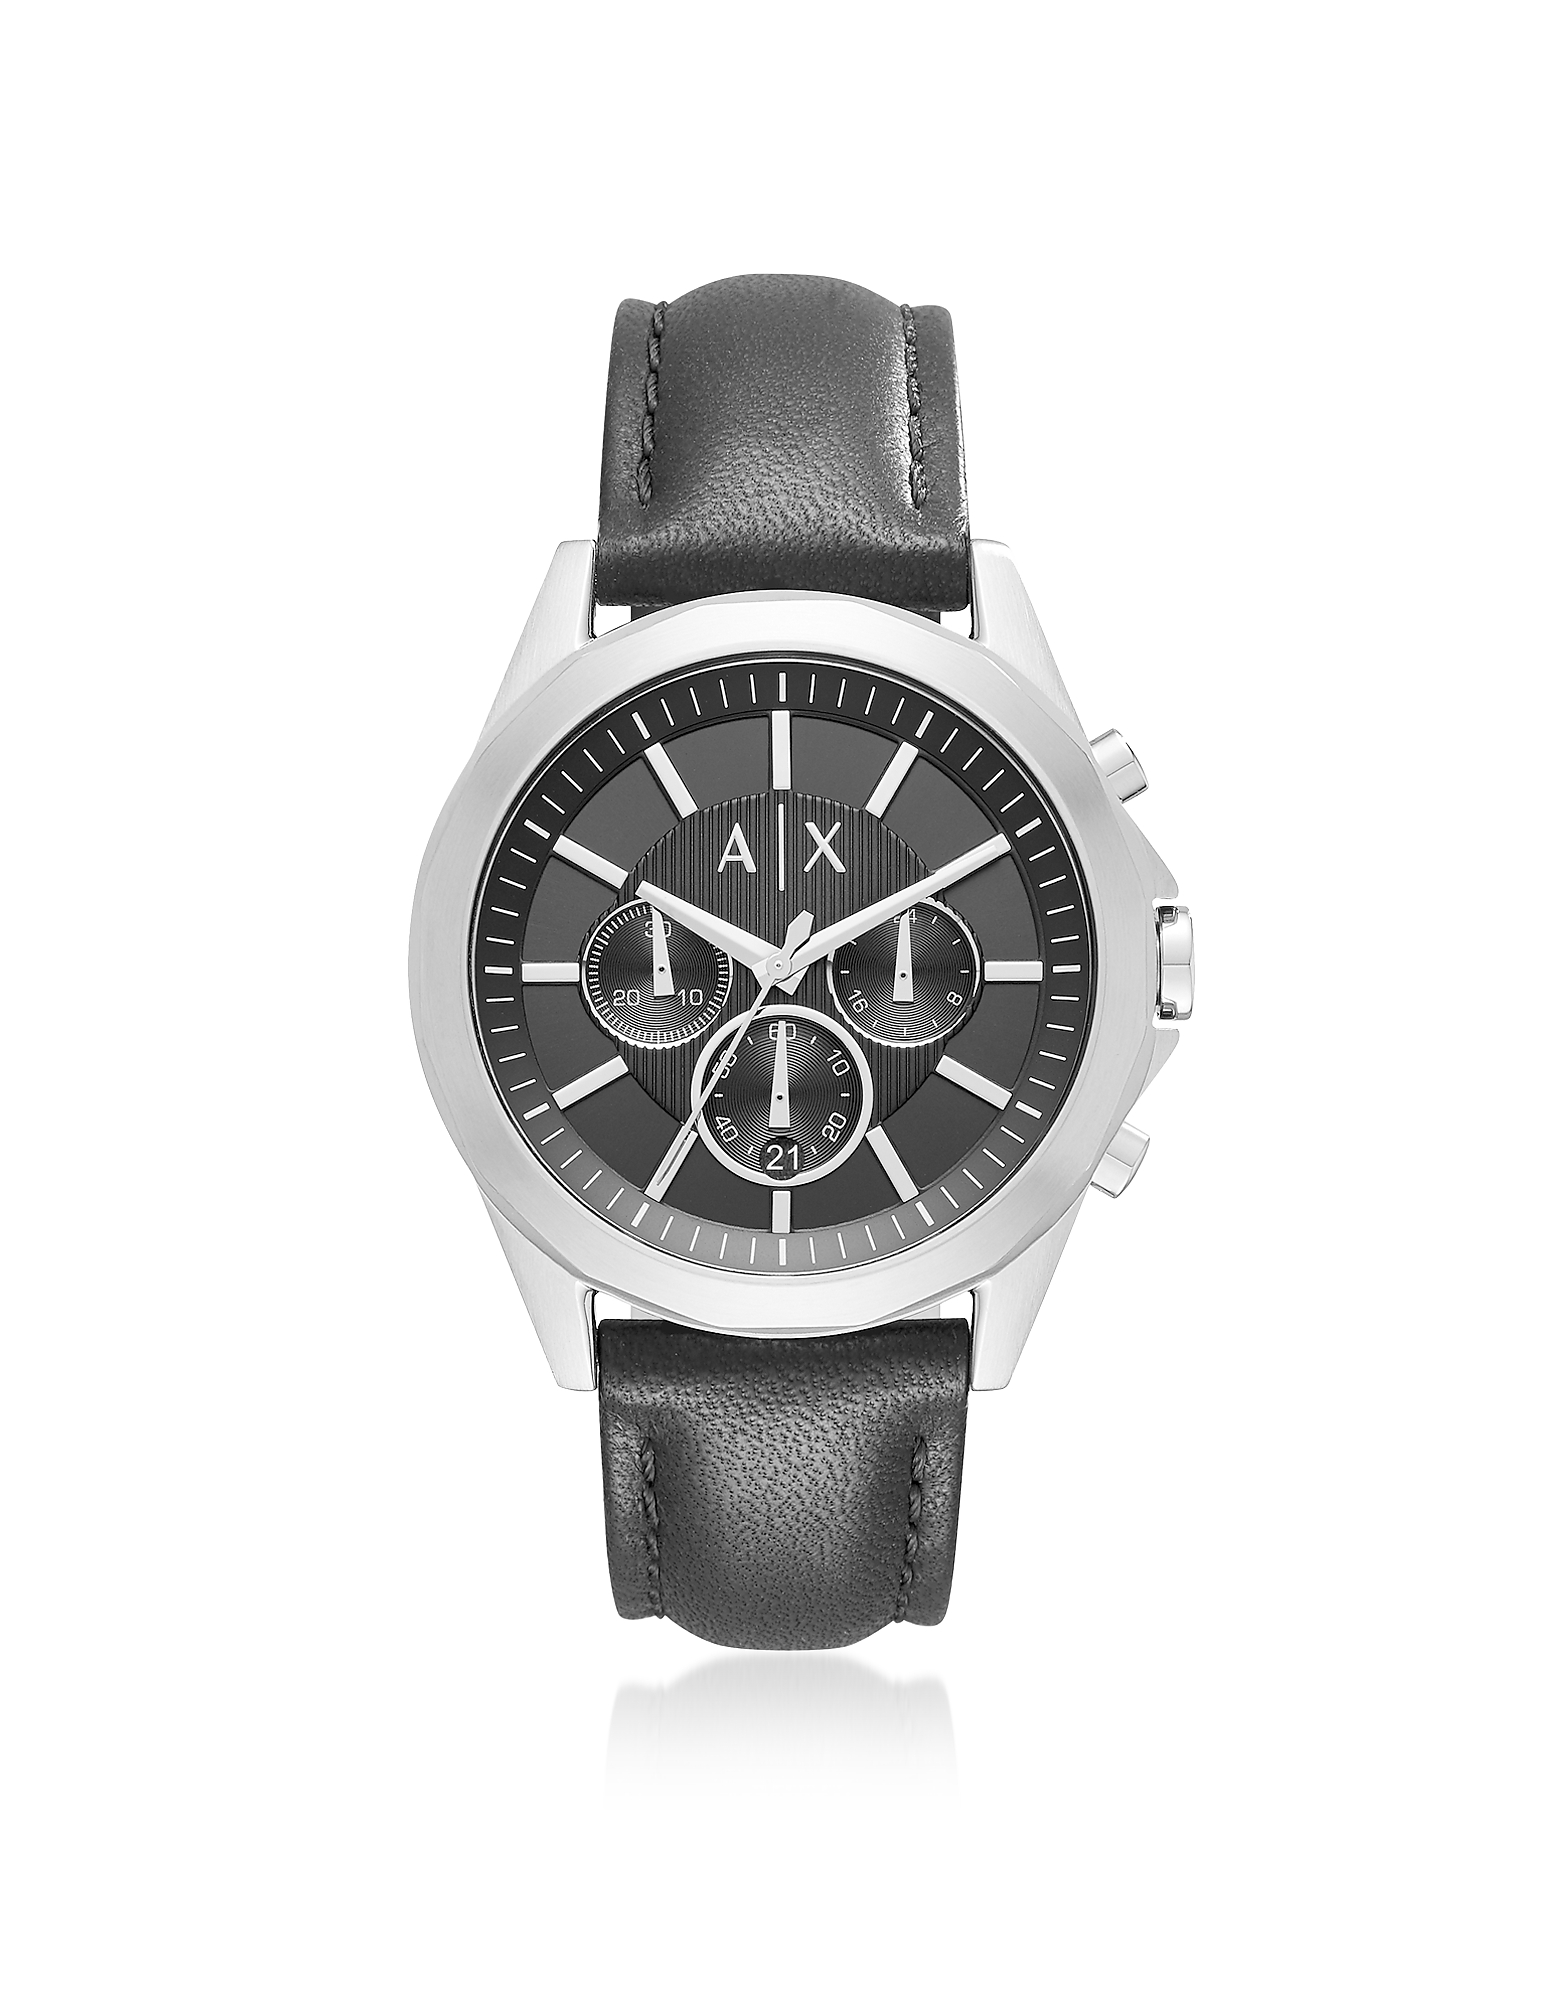 Drexler Black Dial with Black Leather Men's Chronograph Watch